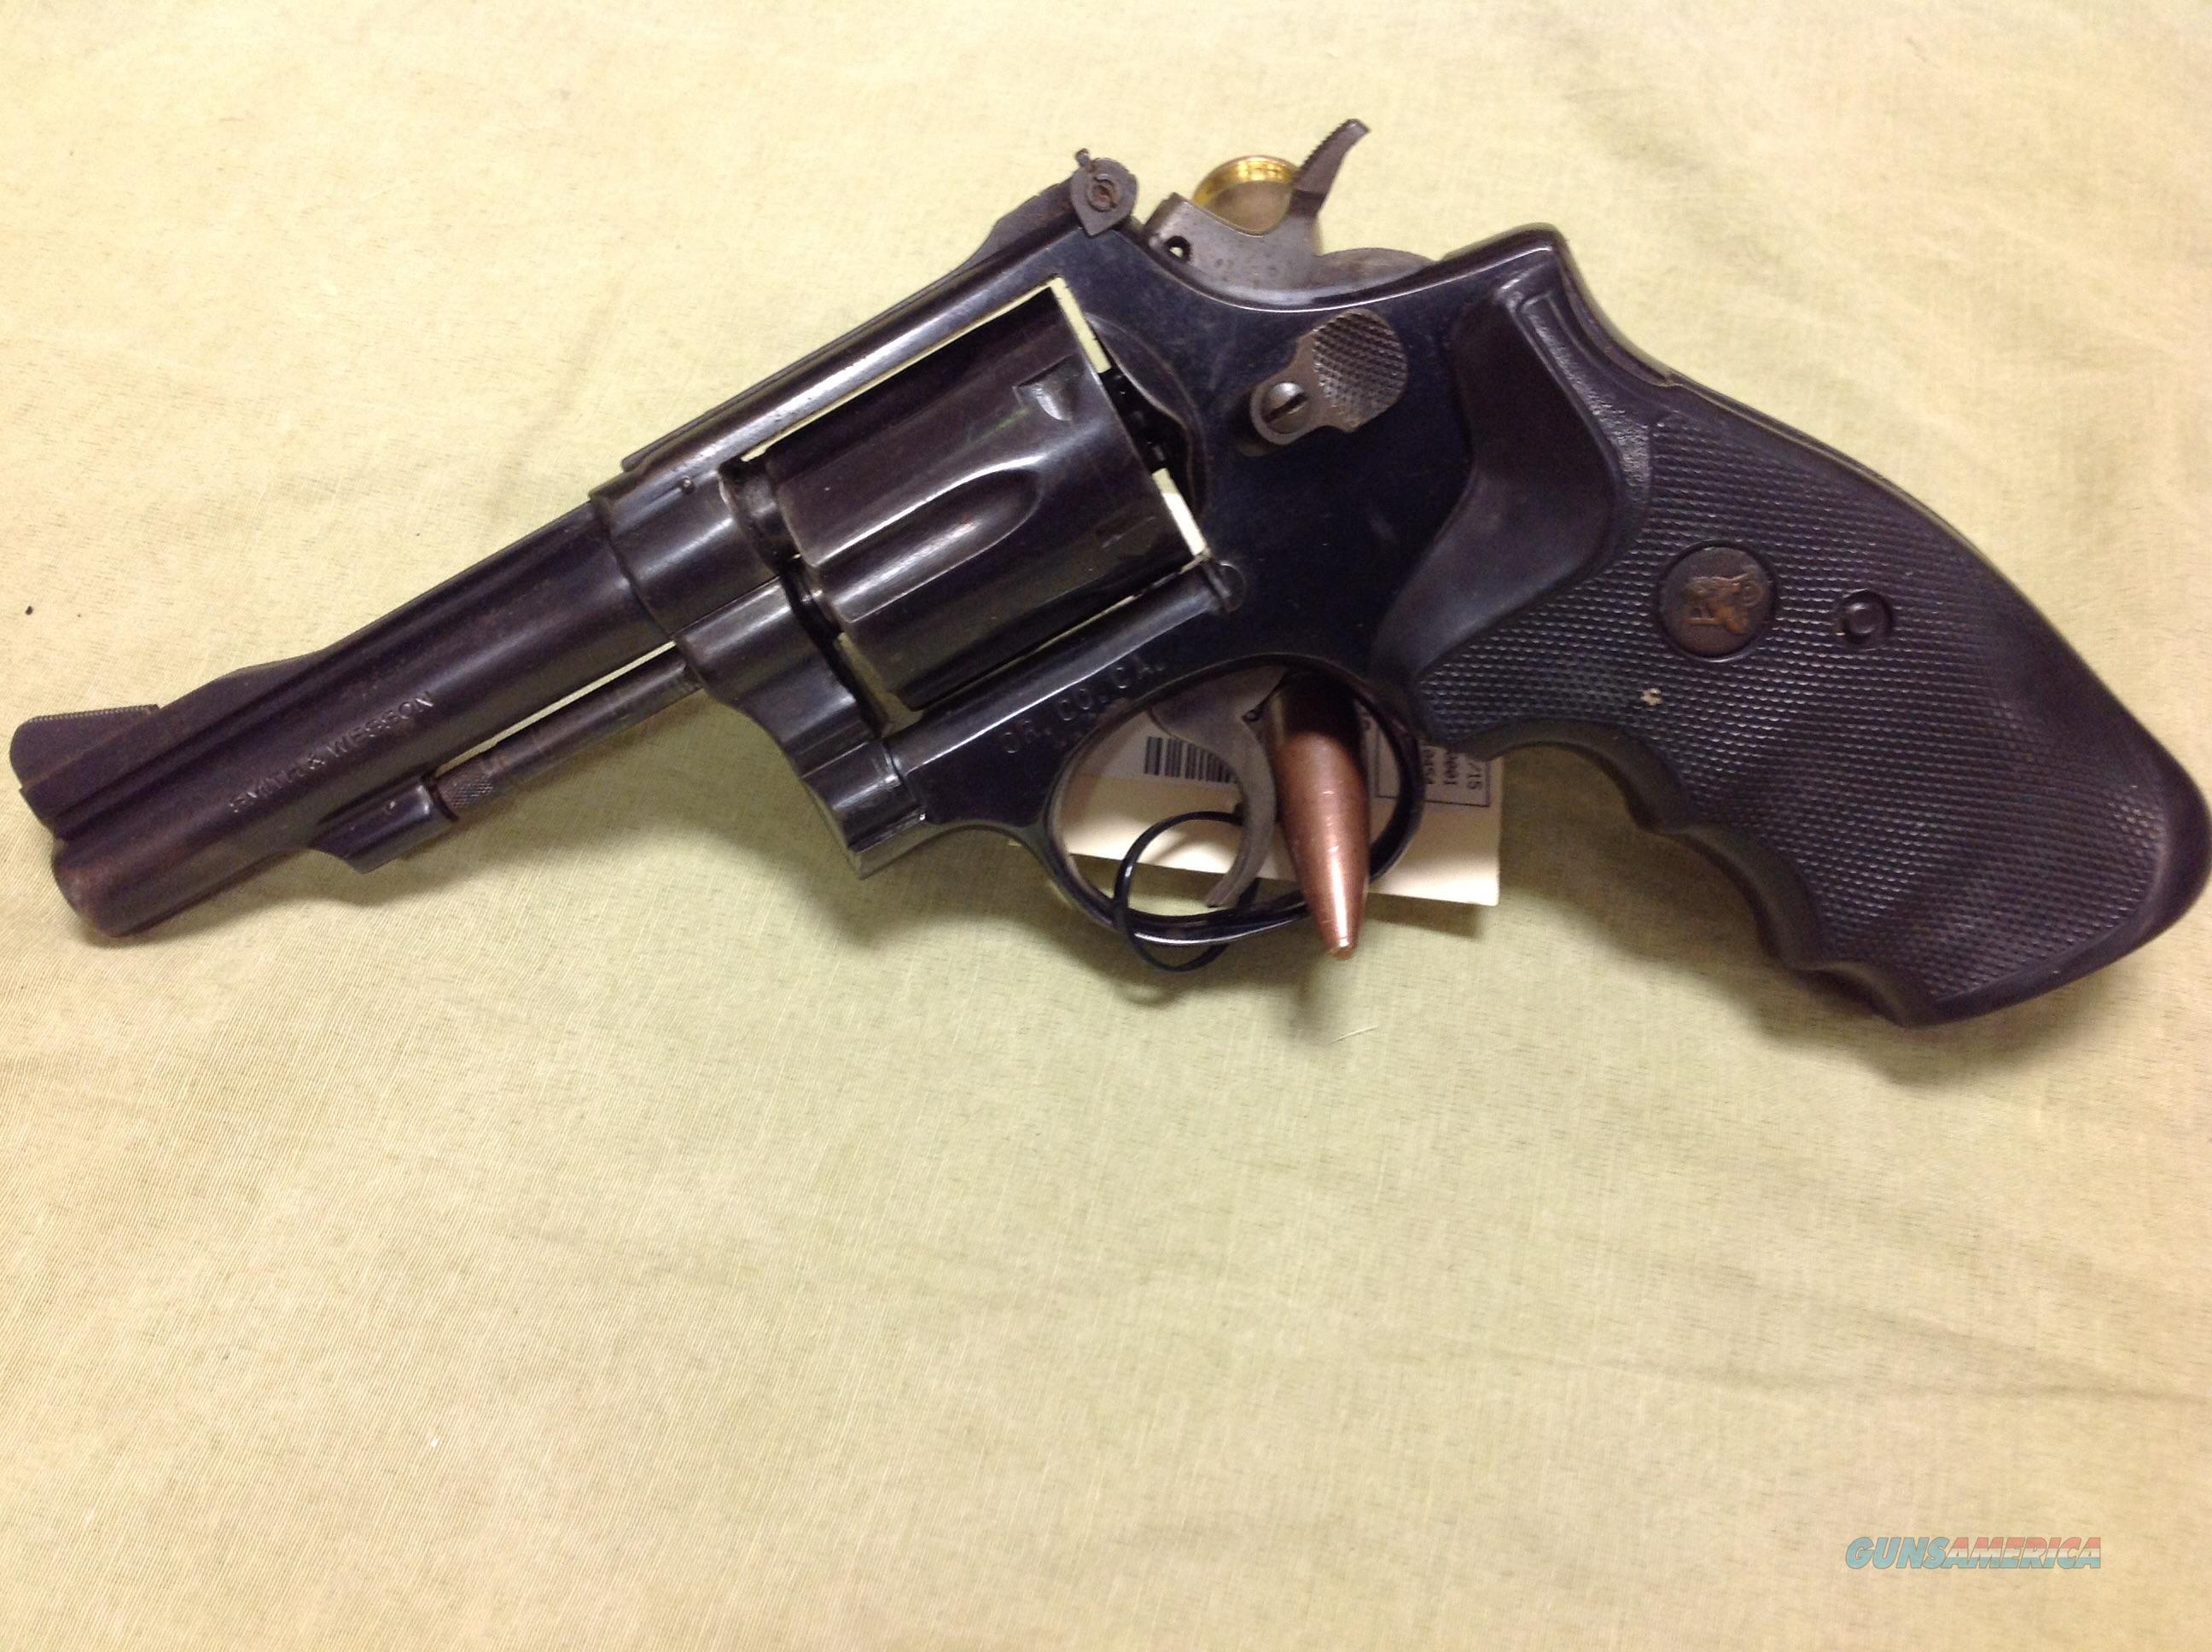 Smith & Wesson model 15-3 38 spl  Guns > Pistols > Smith & Wesson Revolvers > Full Frame Revolver